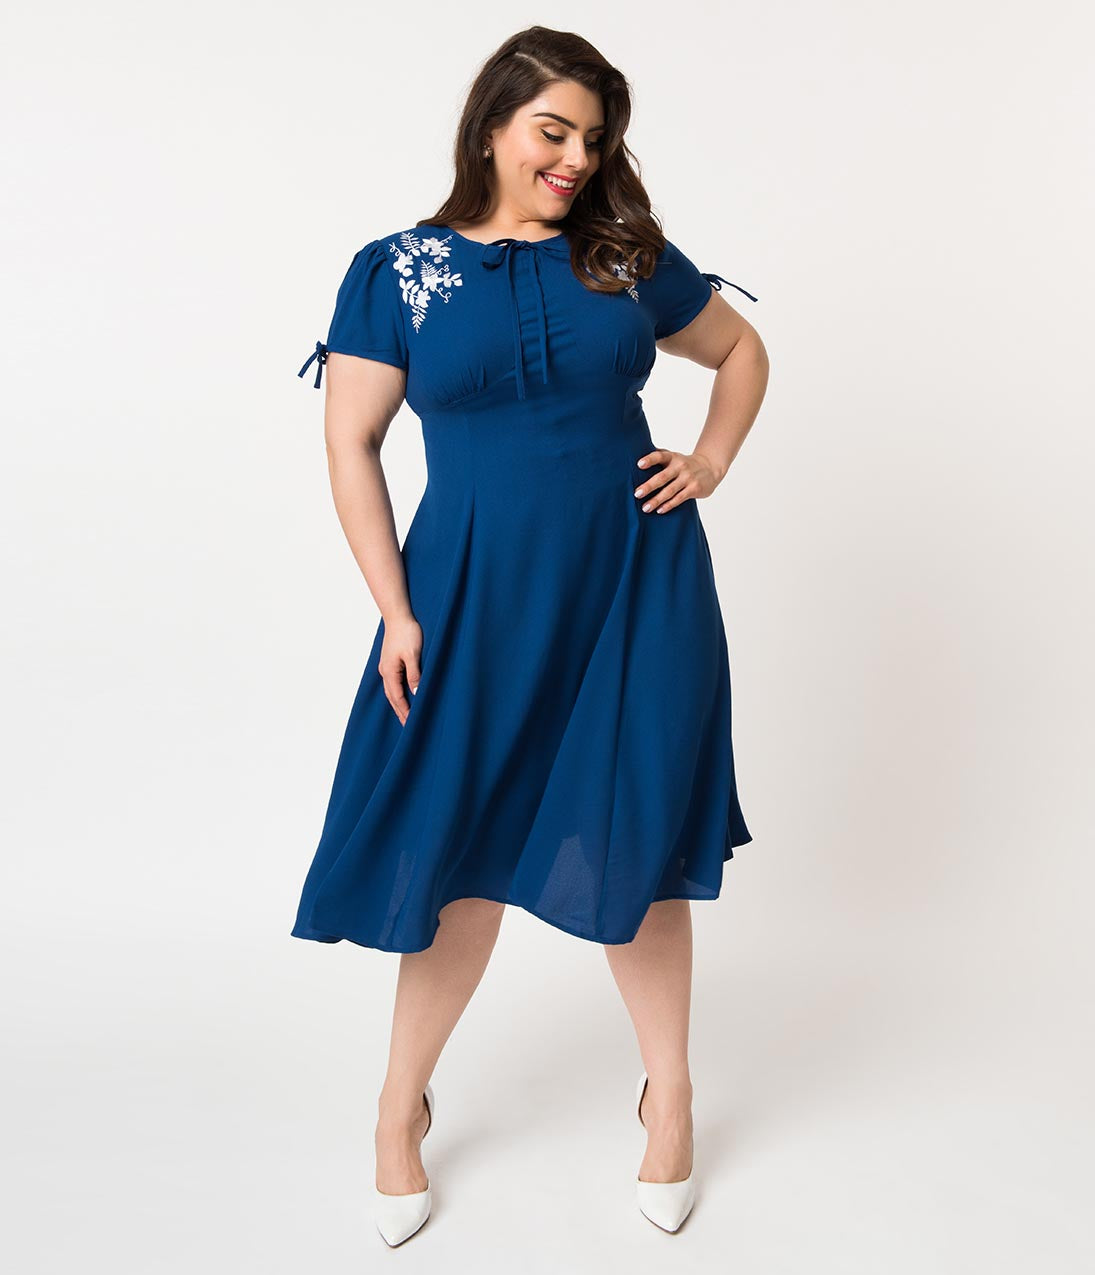 1940s Fashion Advice for Tall Women Plus Size 1940S Style Royal Blue Crepe  White Embroidered Floral Ava Swing Dress $78.00 AT vintagedancer.com